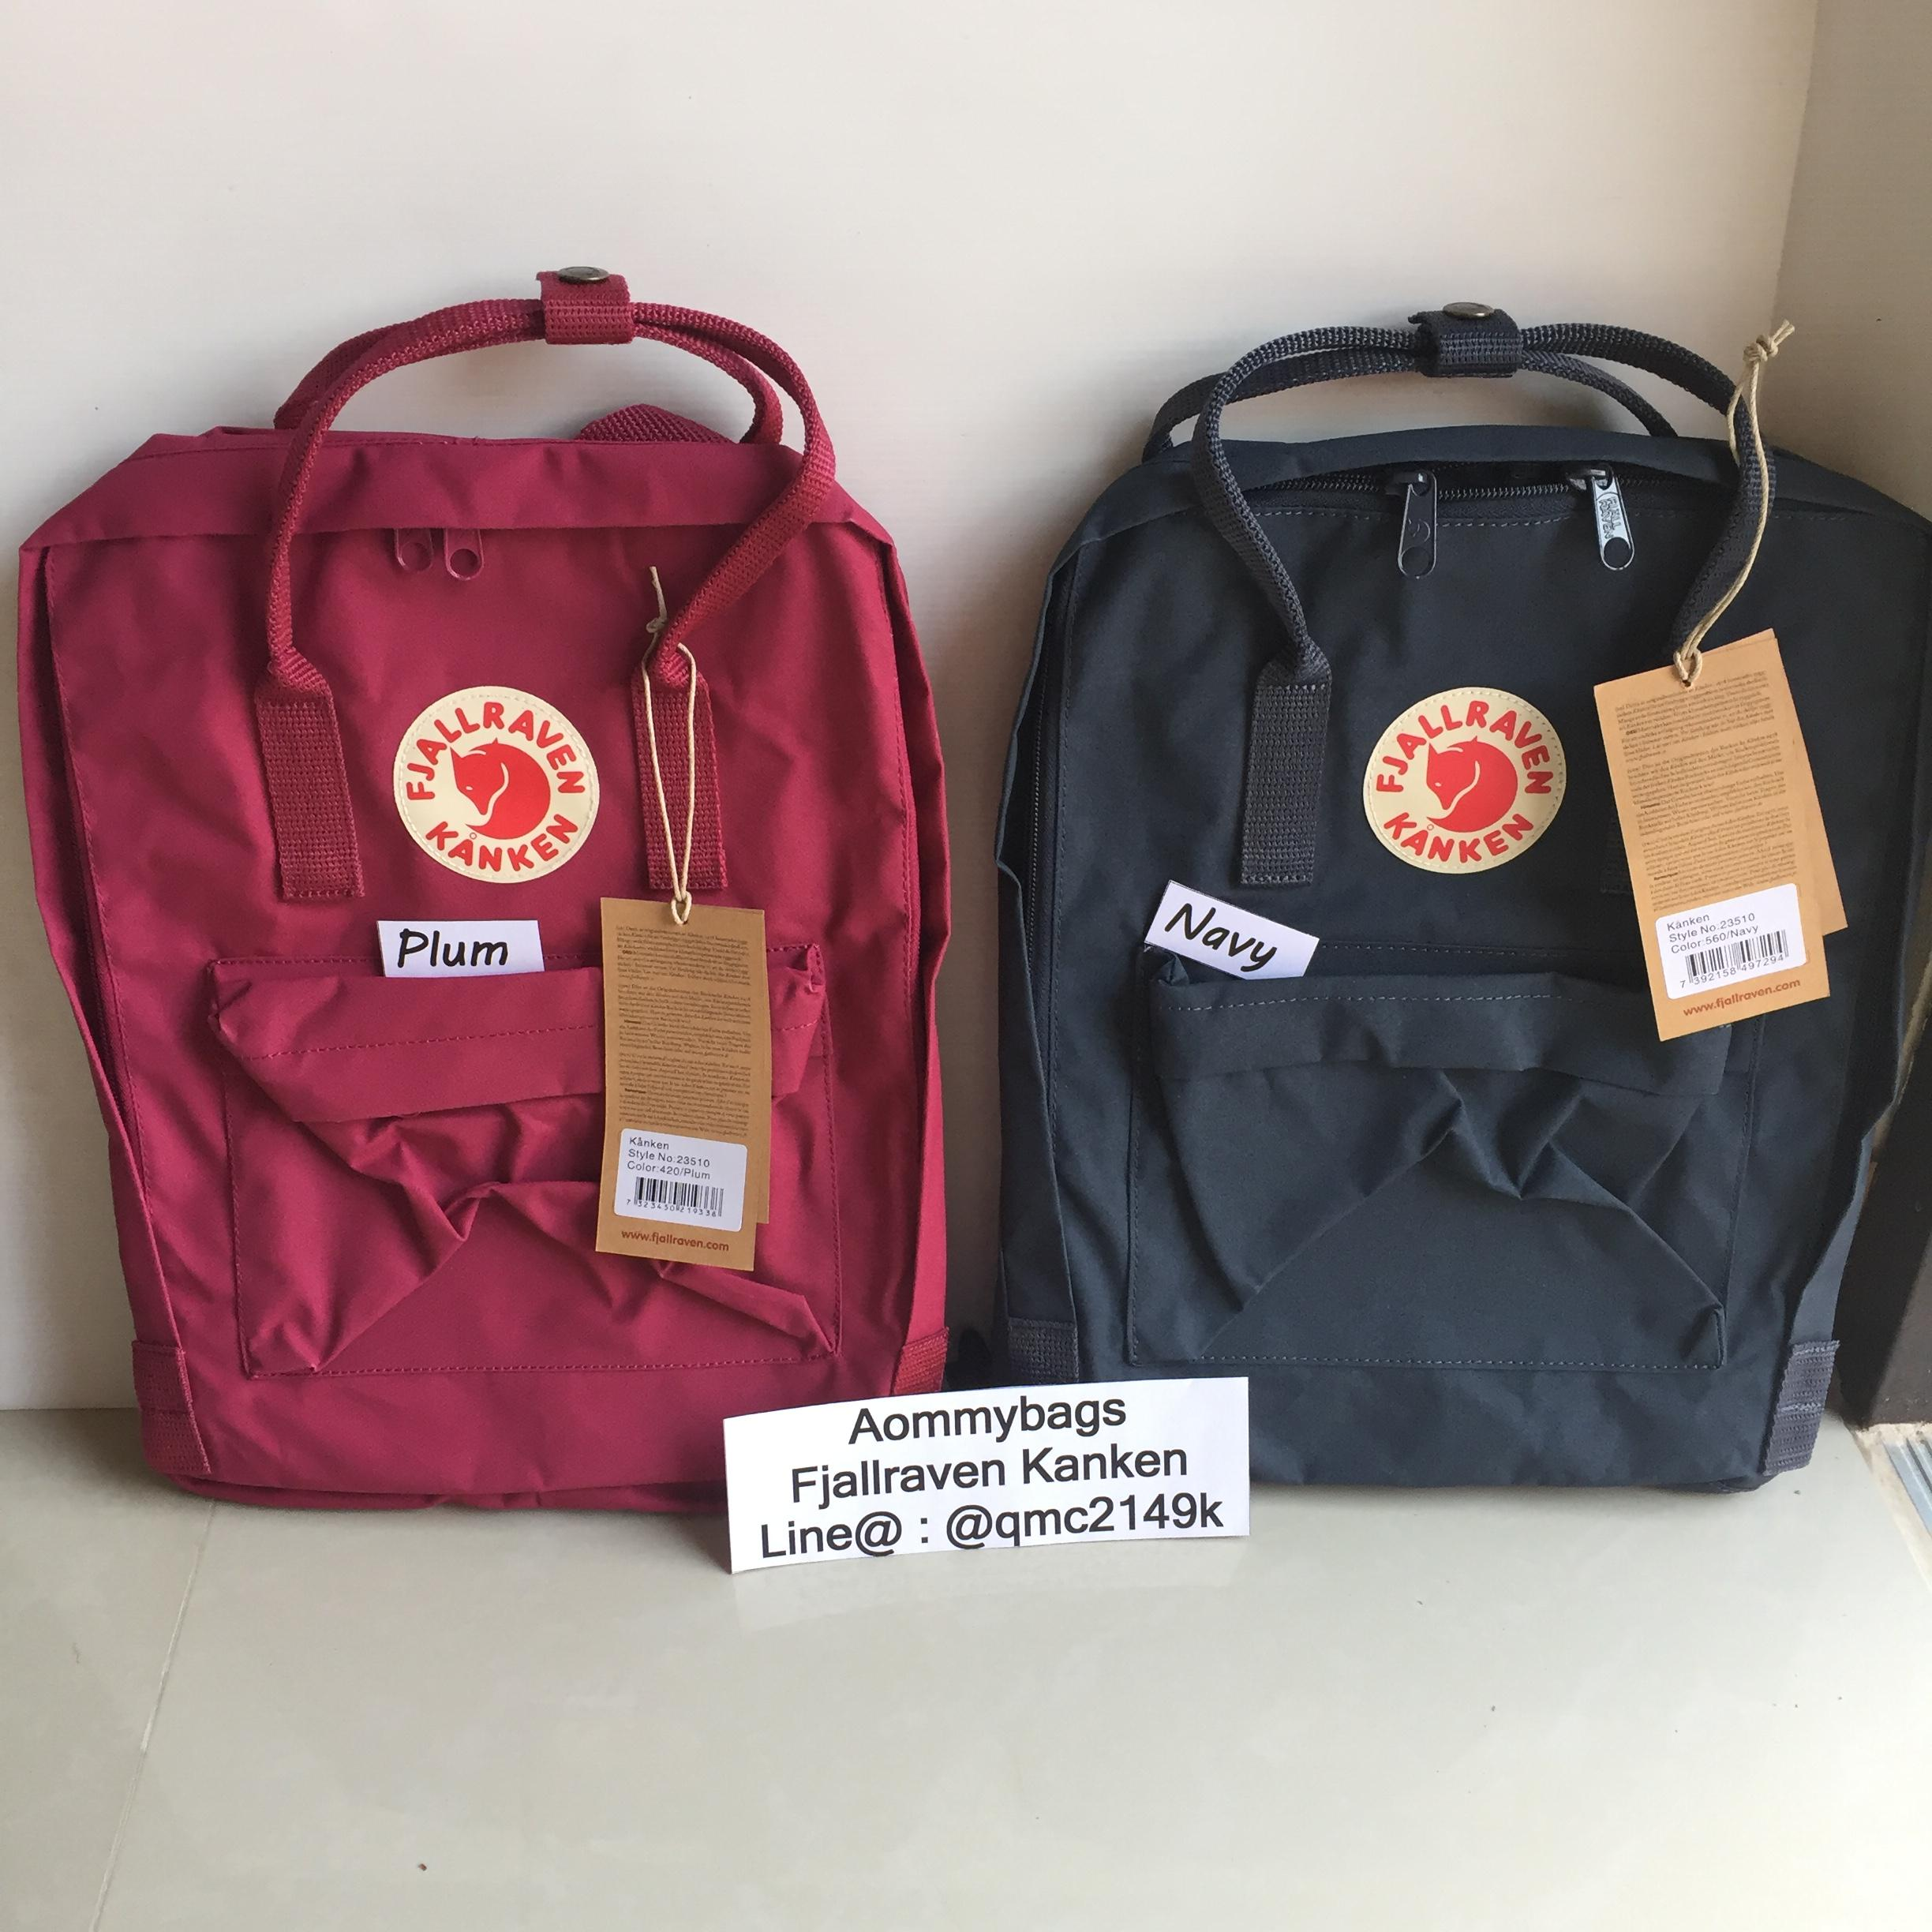 for sale fjallraven kanken classic plum online online. Black Bedroom Furniture Sets. Home Design Ideas